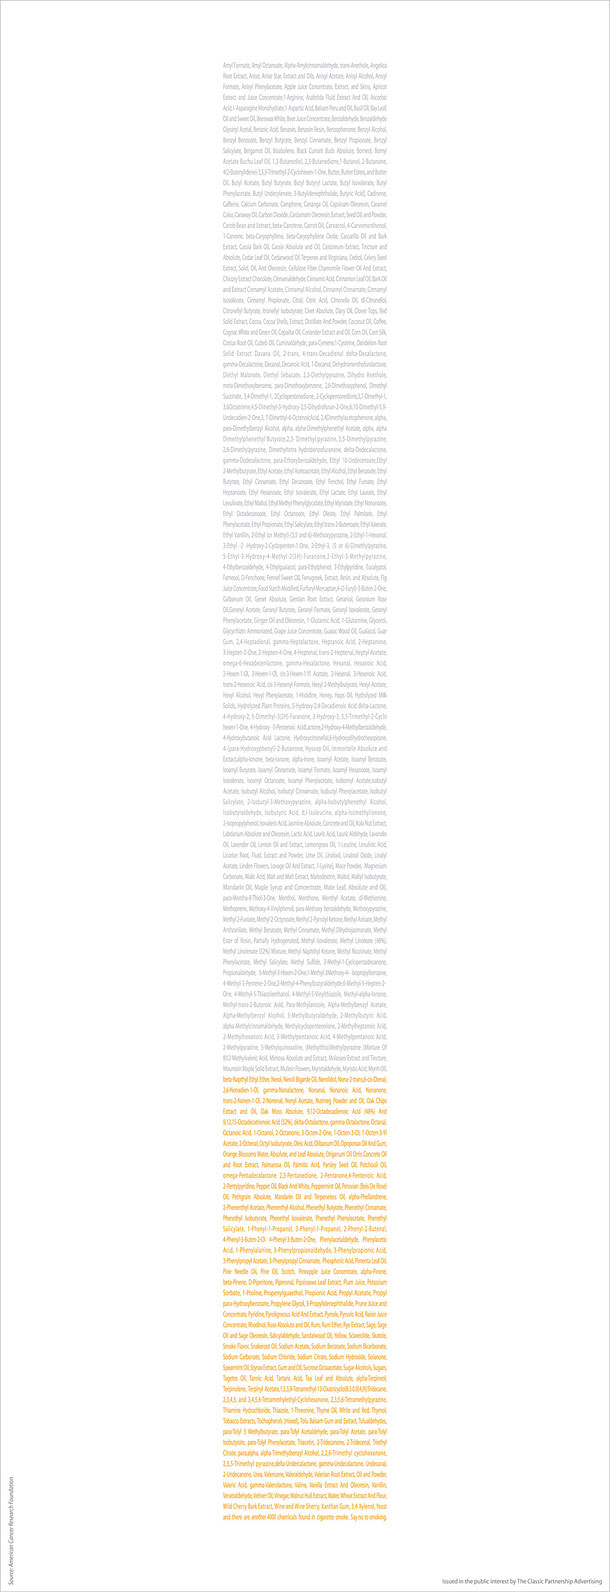 "Advertising Agency: The Classic Partnership Advertising, Riyadh, Saudi Arabia: ""…Xantham Gum, 3,4-Xylenol, Yeast and there are another 4000 chemicals found in cigarette smoke. Say no to smoking."""